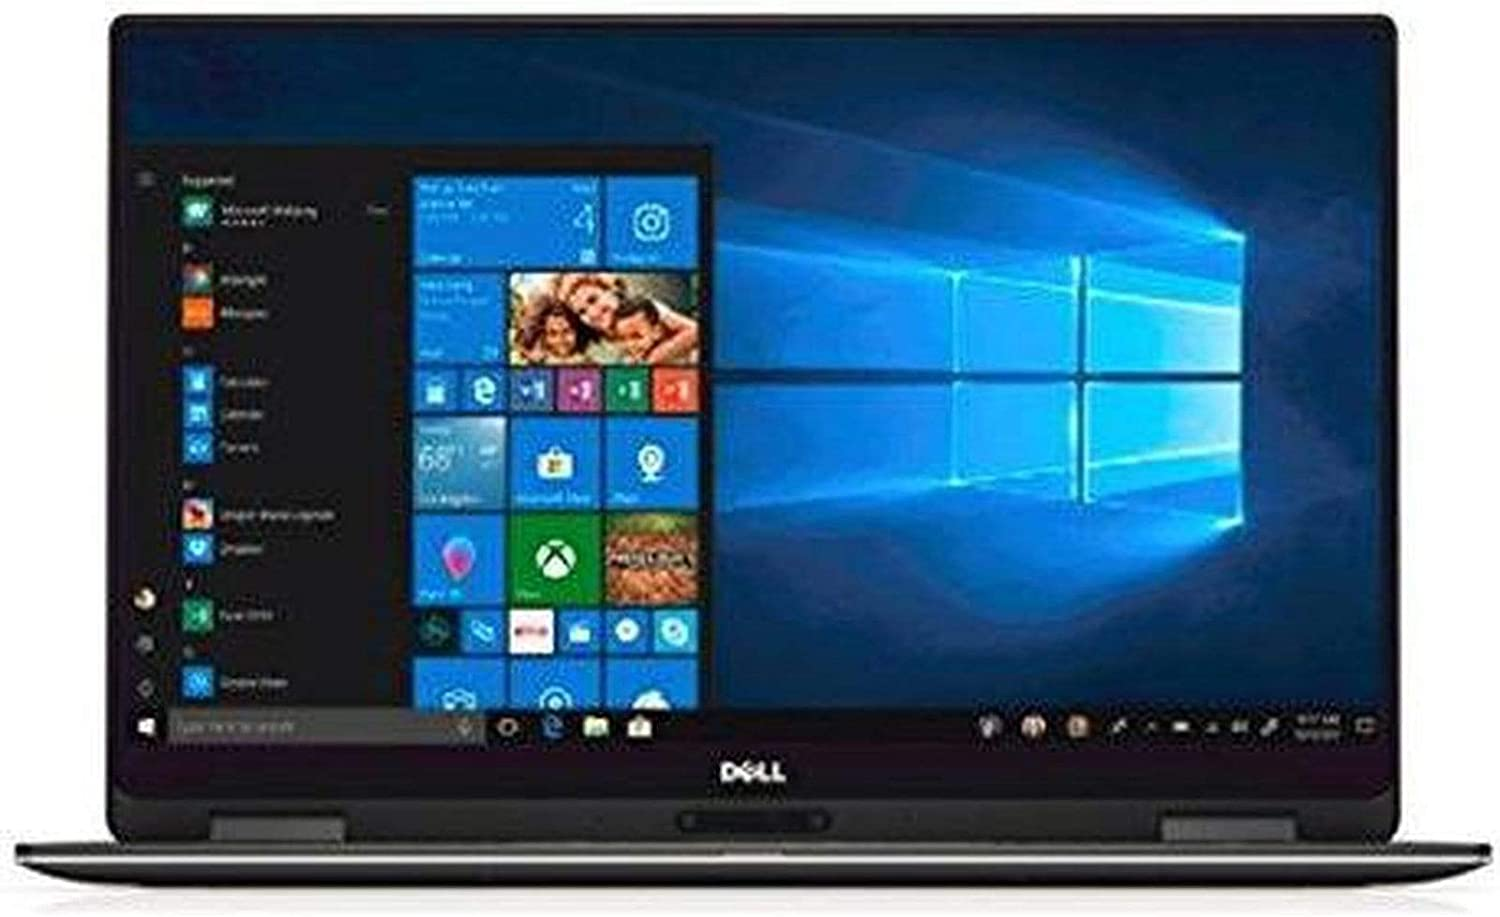 Dell XPS 13 9365 13-inch 2-in-1 QHD+ (3200 x 1800) Touchscreen i7-7Y75 16GB 512GB SSD Silver Windows 10 Home XPS9365-7215SLV-PUS (Renewed)